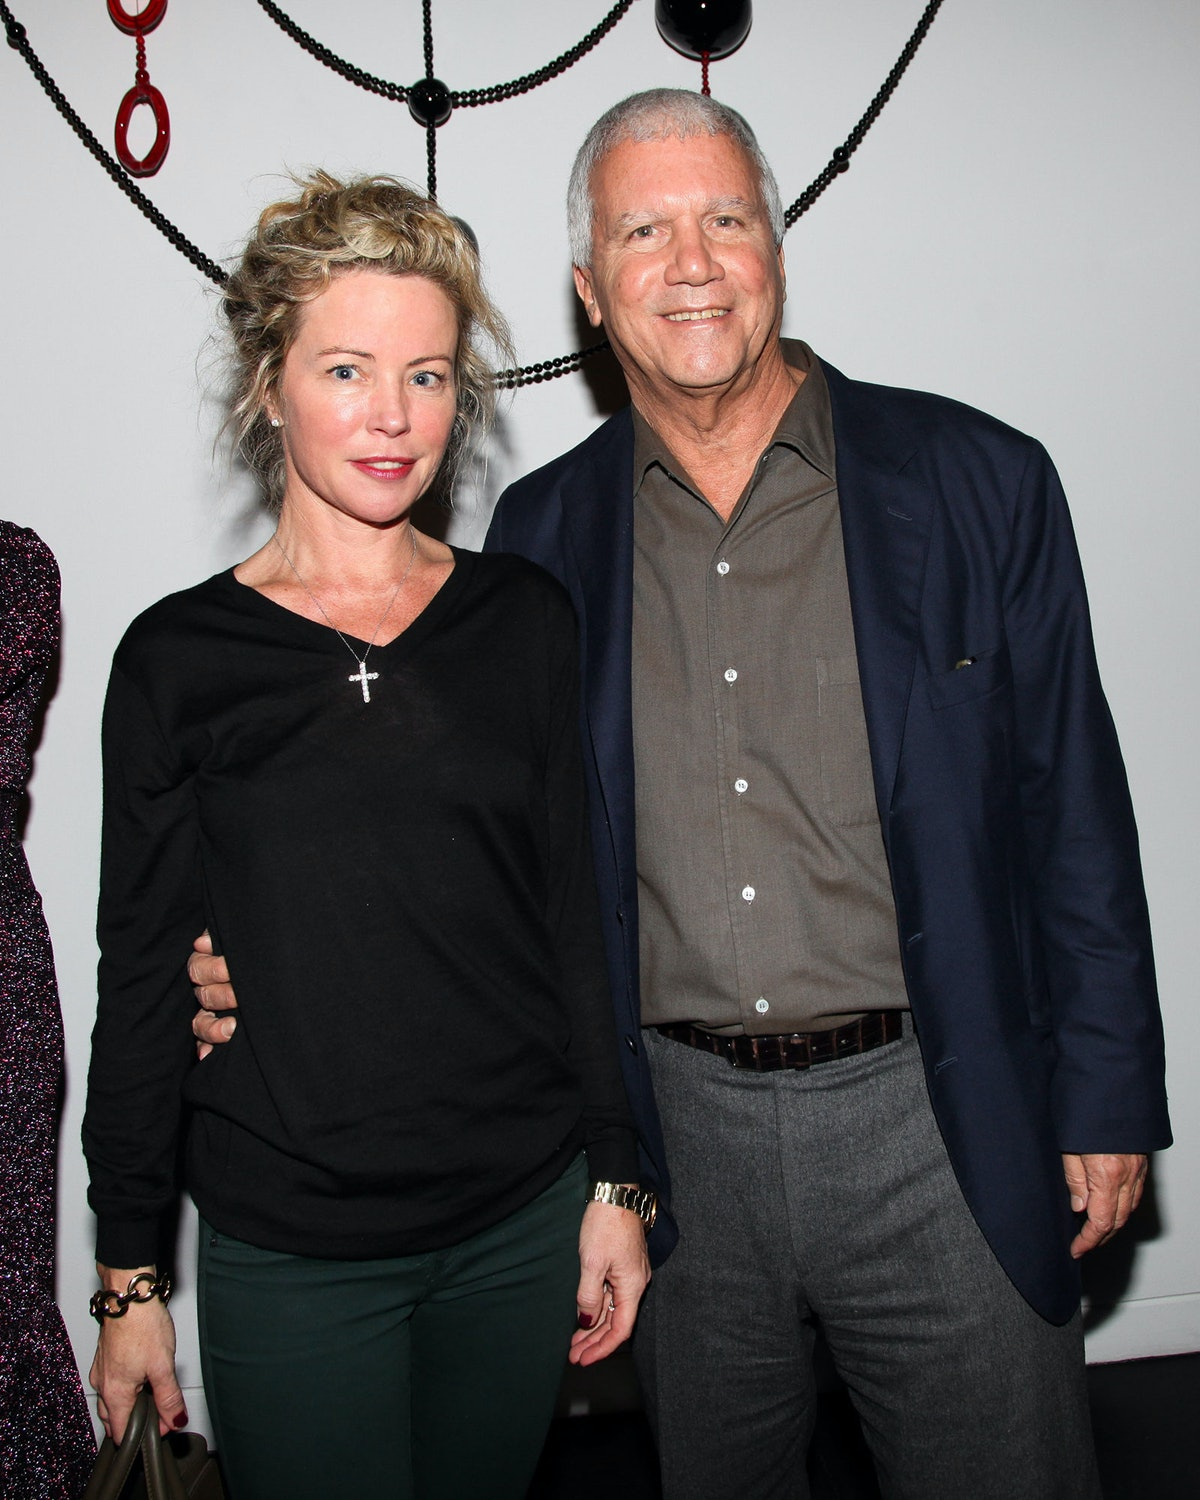 Chrissie Erph and Larry Gagosian celebrate Peter Marino's exhibition at the Bass Museum of Art